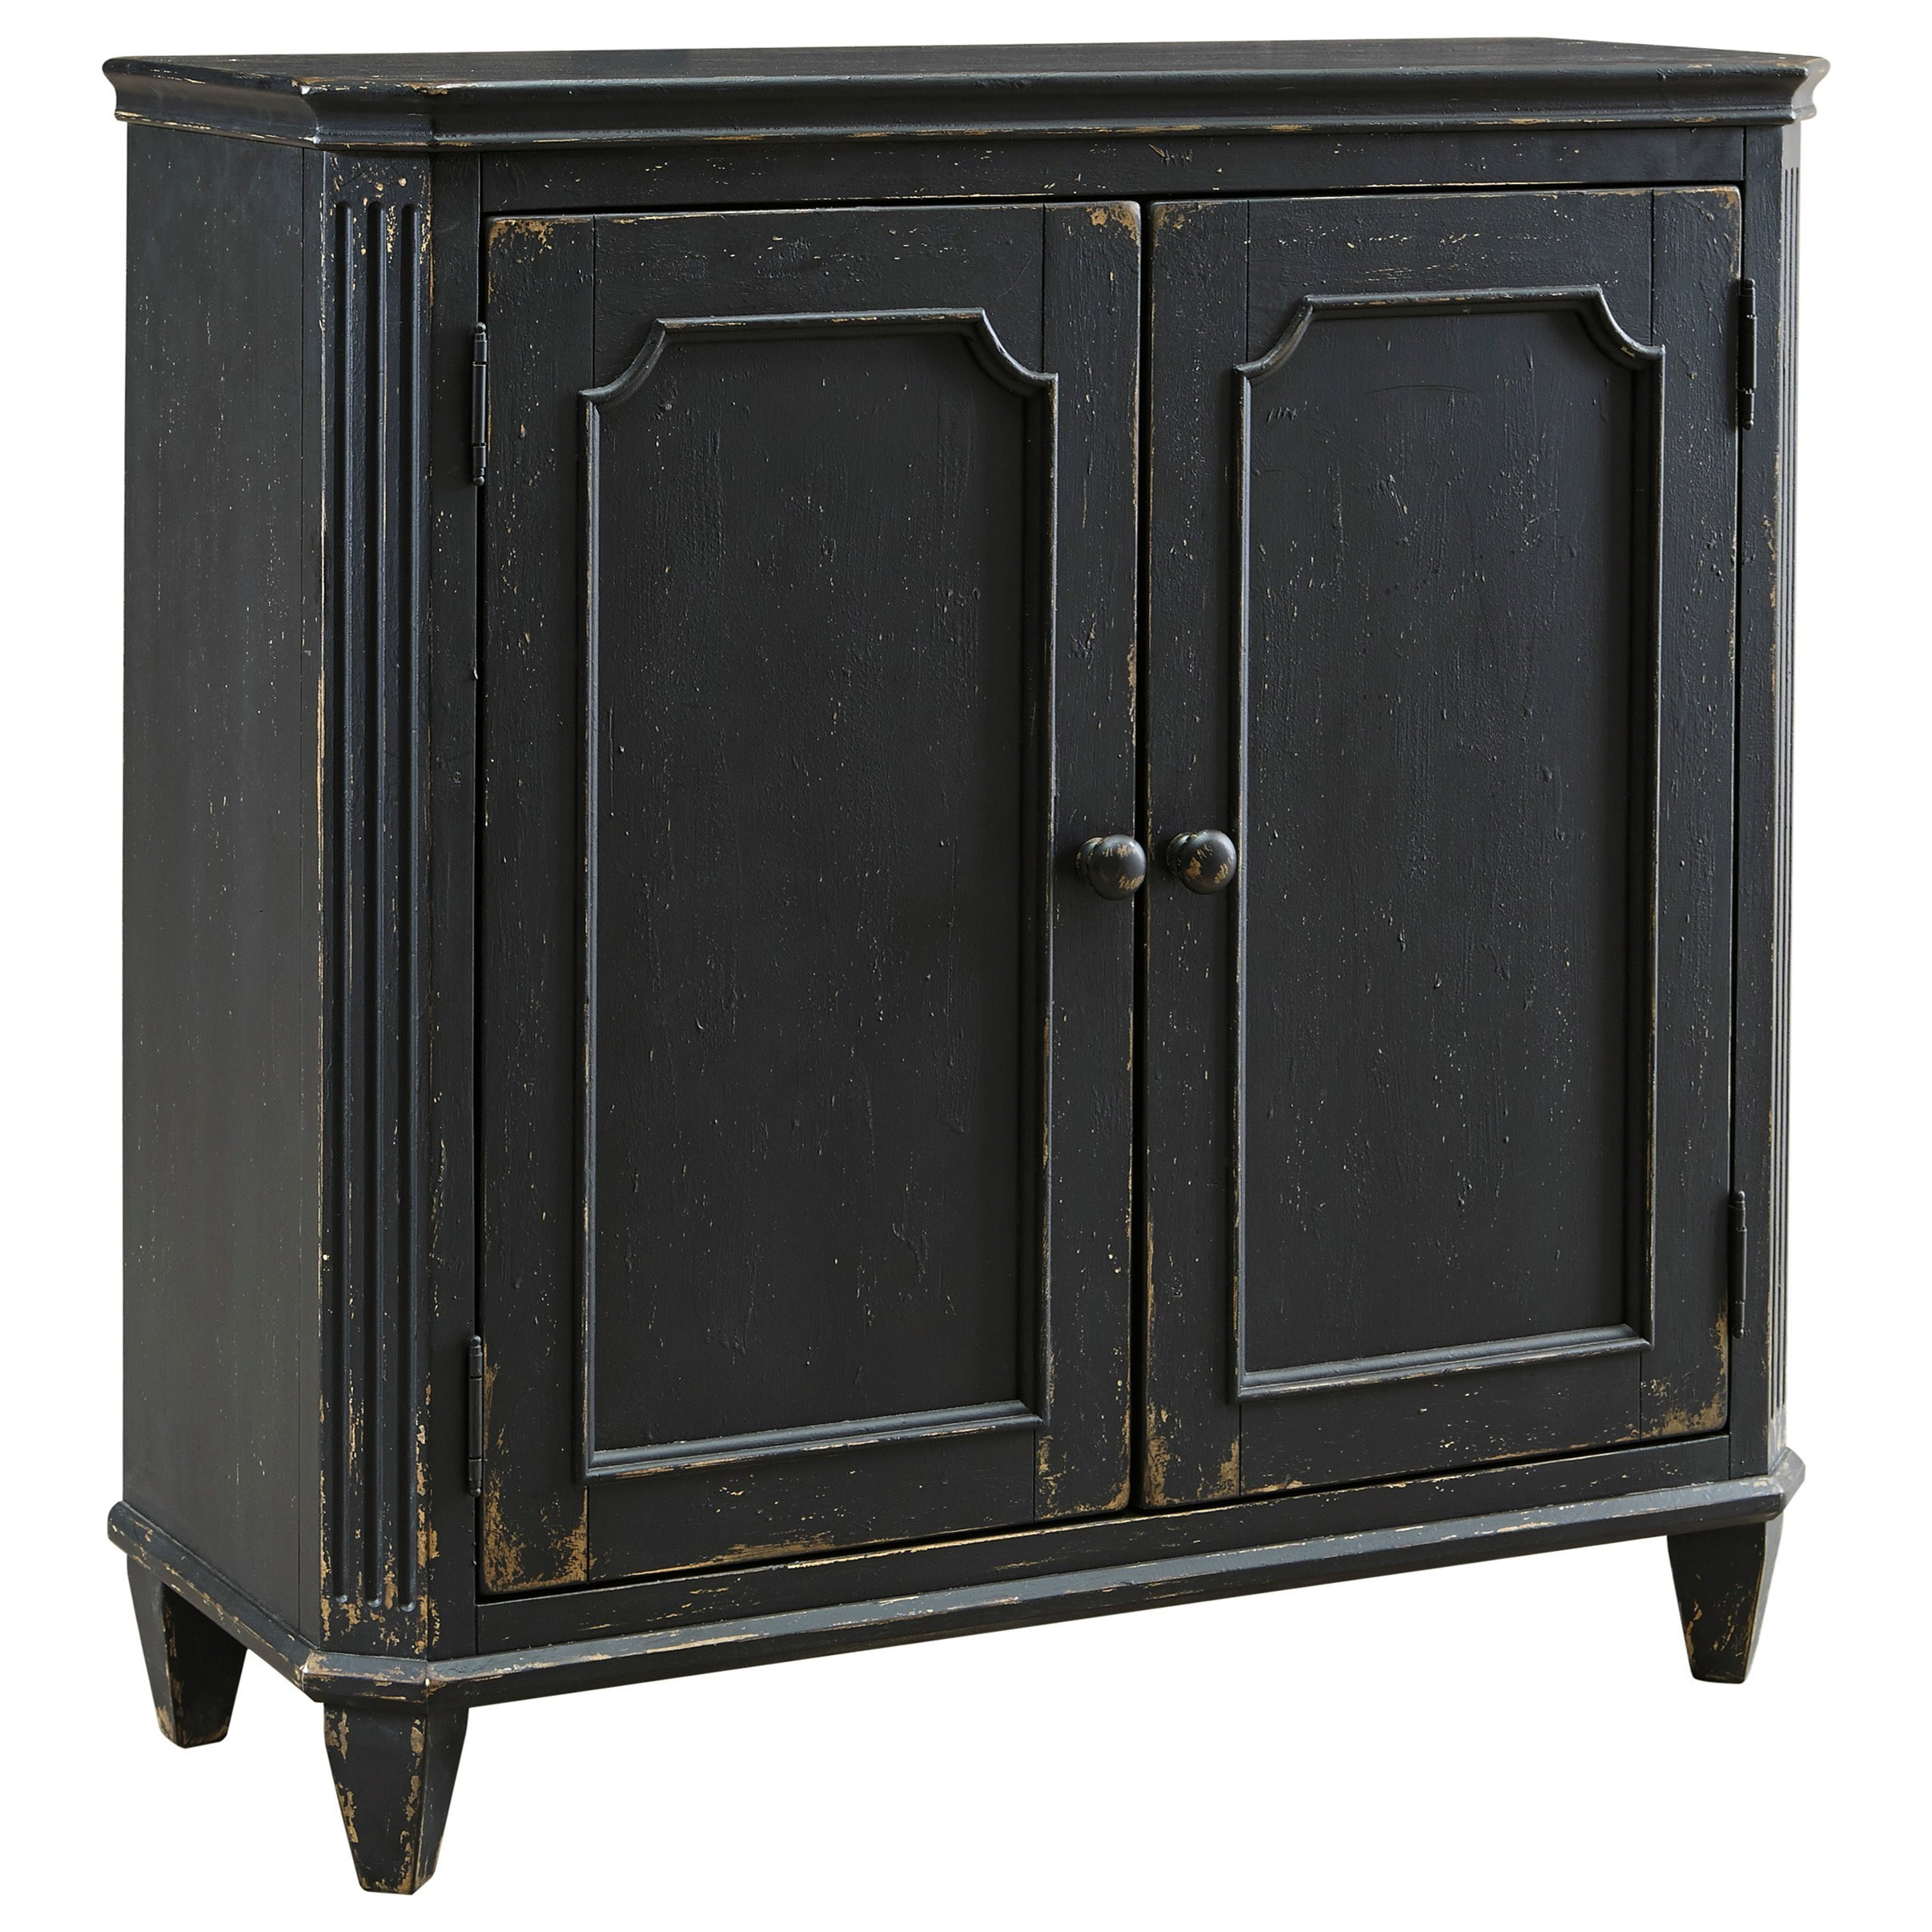 Signature Design by Ashley Mirimyn Door Accent Cabinet - Item Number: T505-840